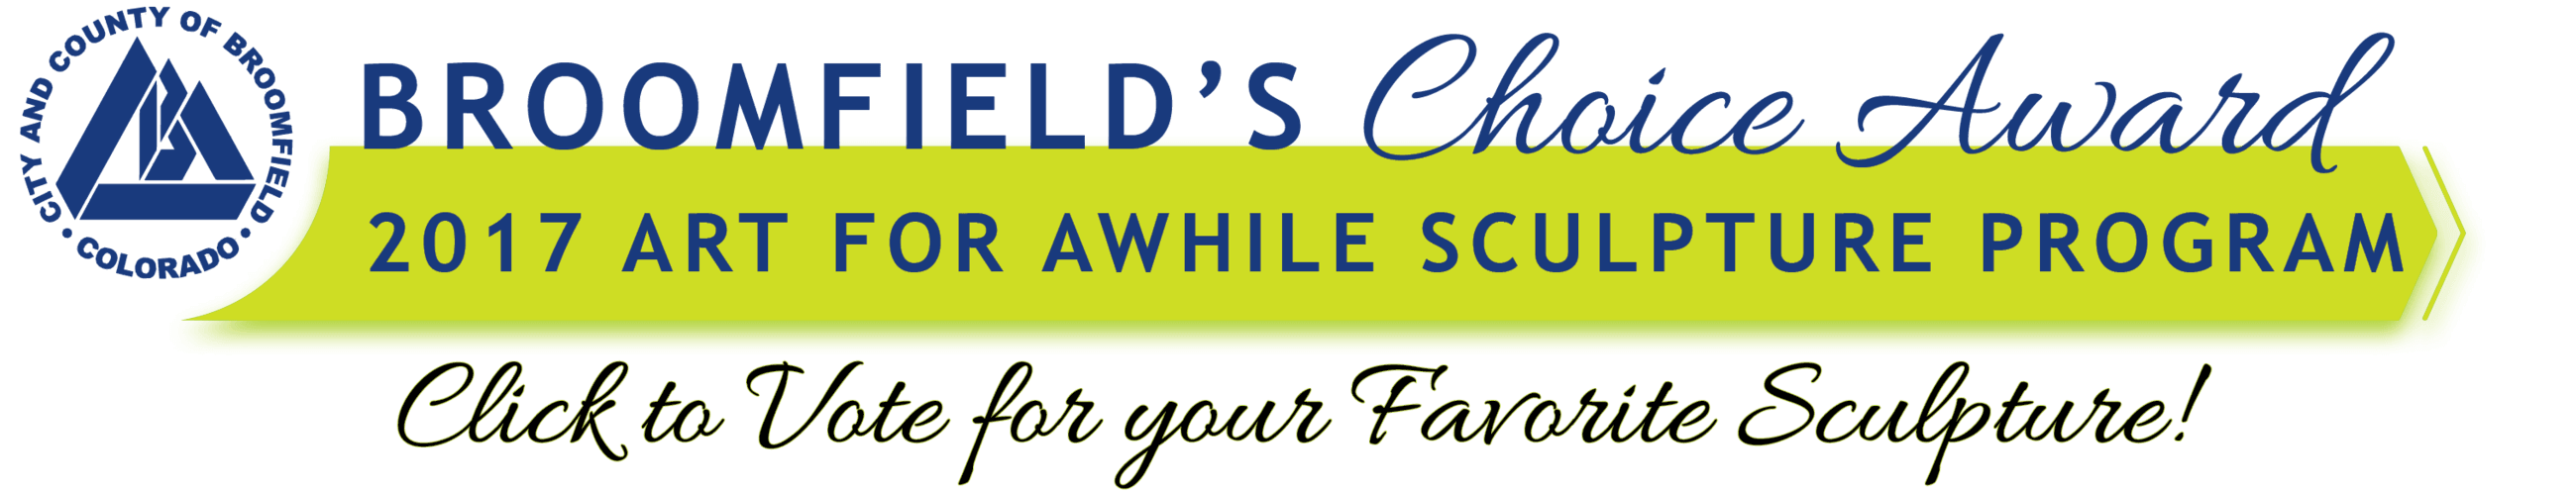 Vote for BroomfieldS Choice Award